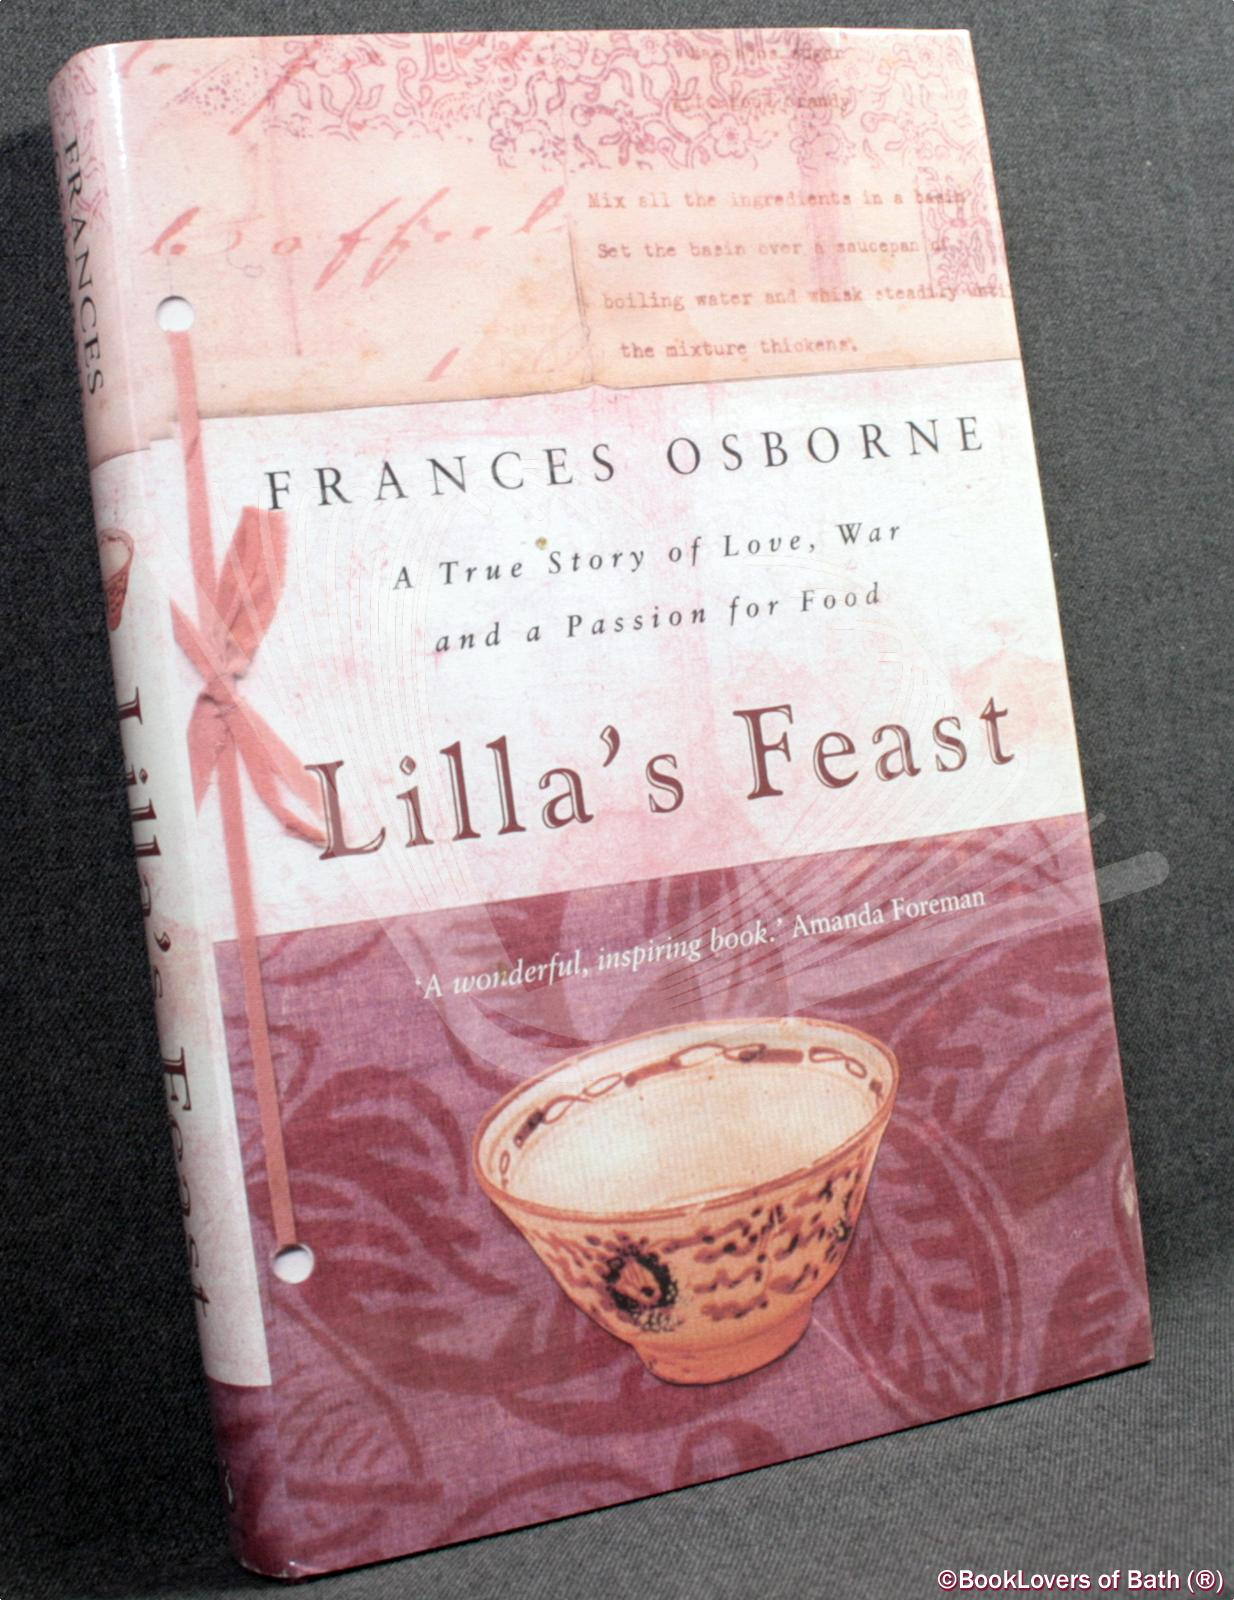 Lilla's Feast: A True Story of Love, War, and a Passion for Food - Frances Osborne